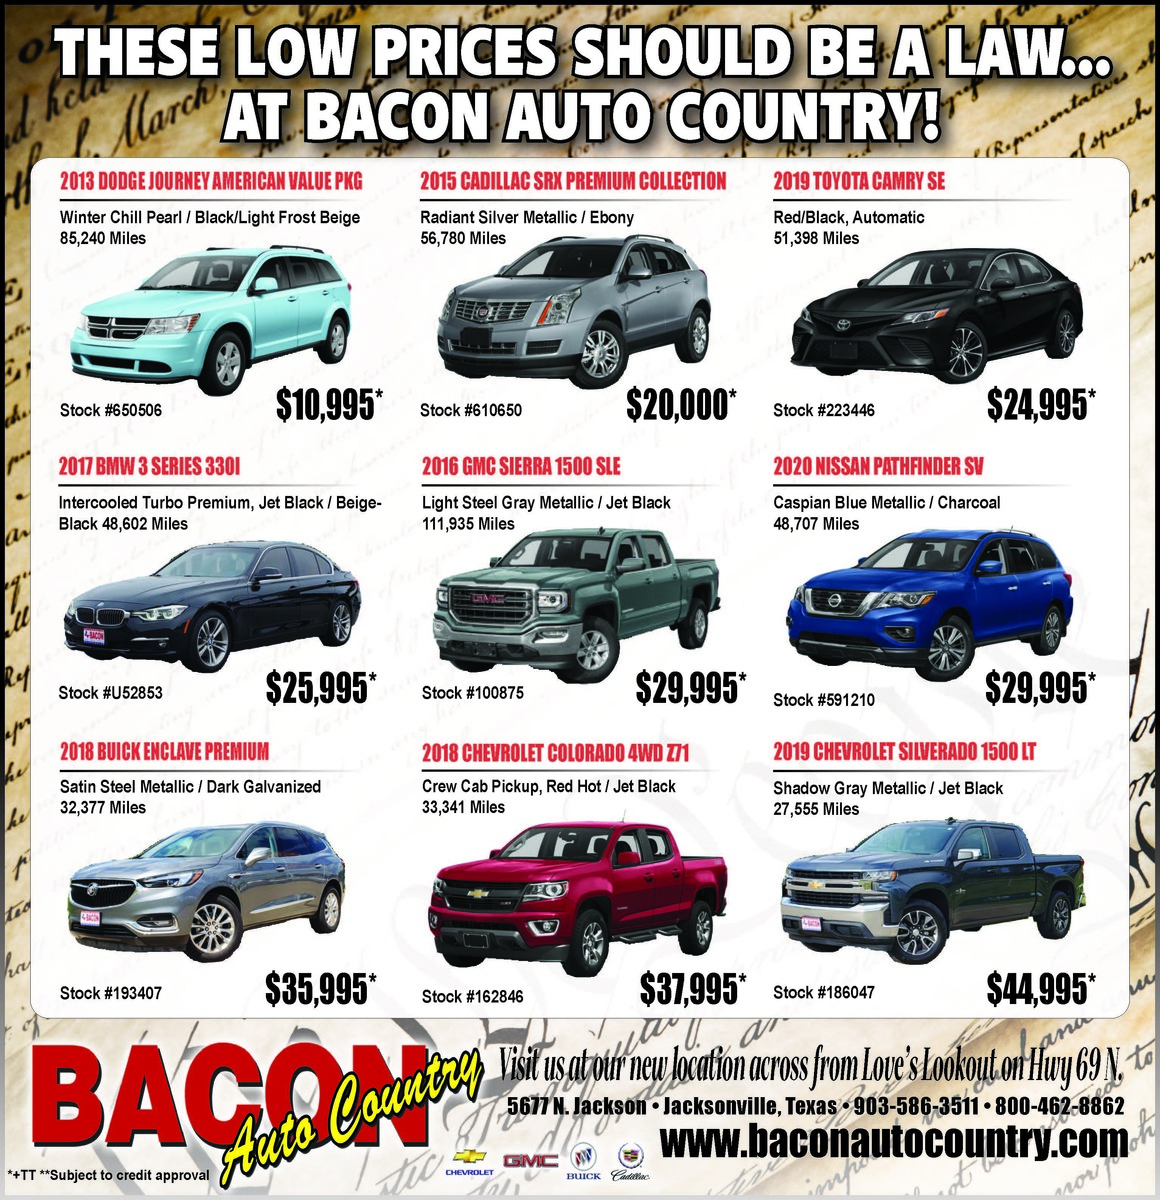 Prices So Low It Should Be The Law